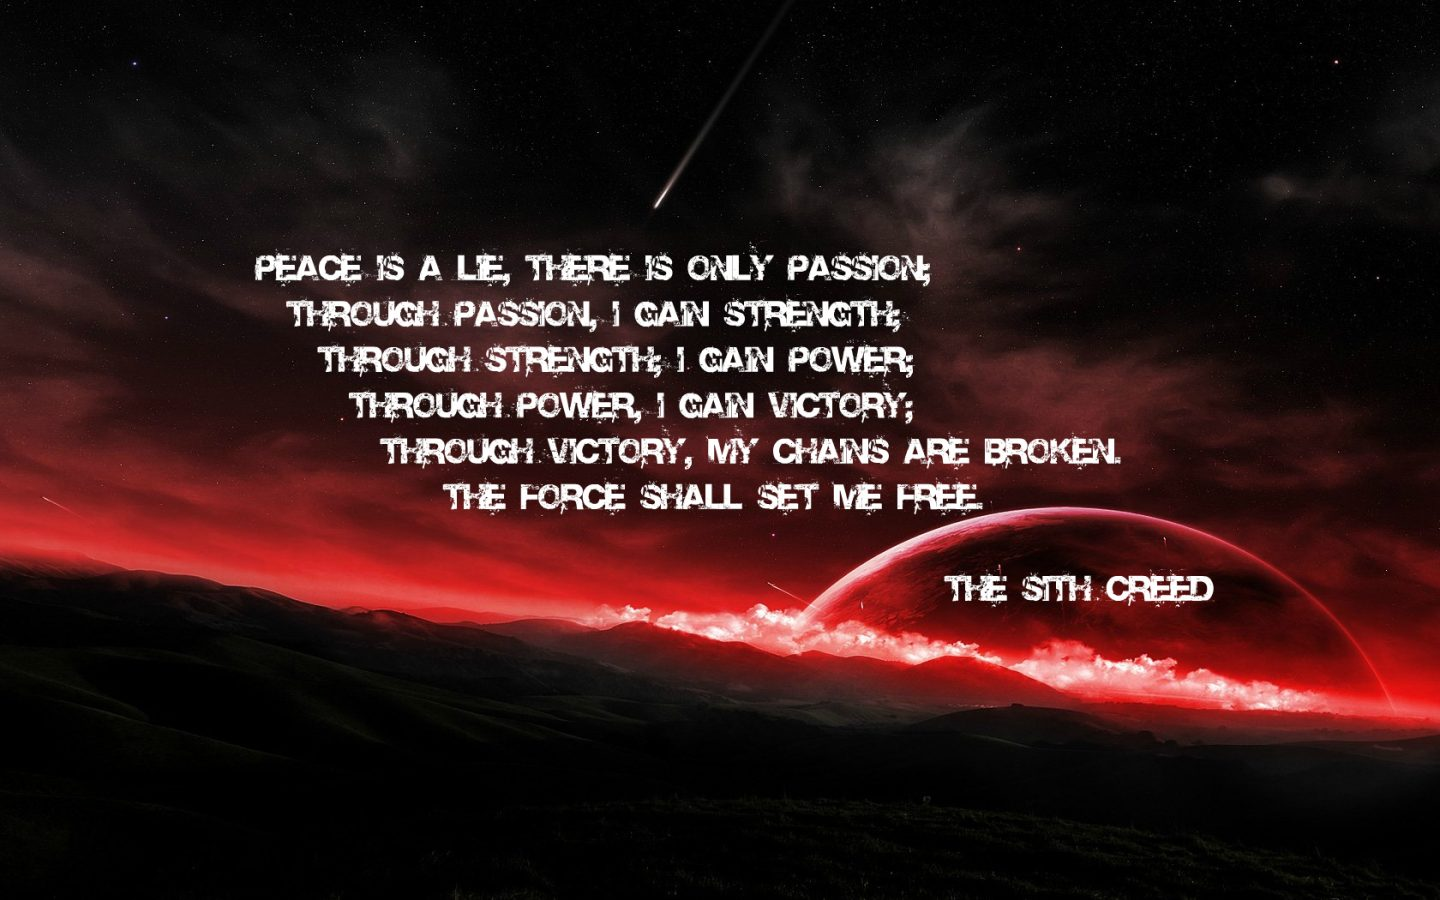 Star Wars Sith Wallpaper Phone For Free Wallpaper 1440x900 Download Hd Wallpaper Wallpapertip